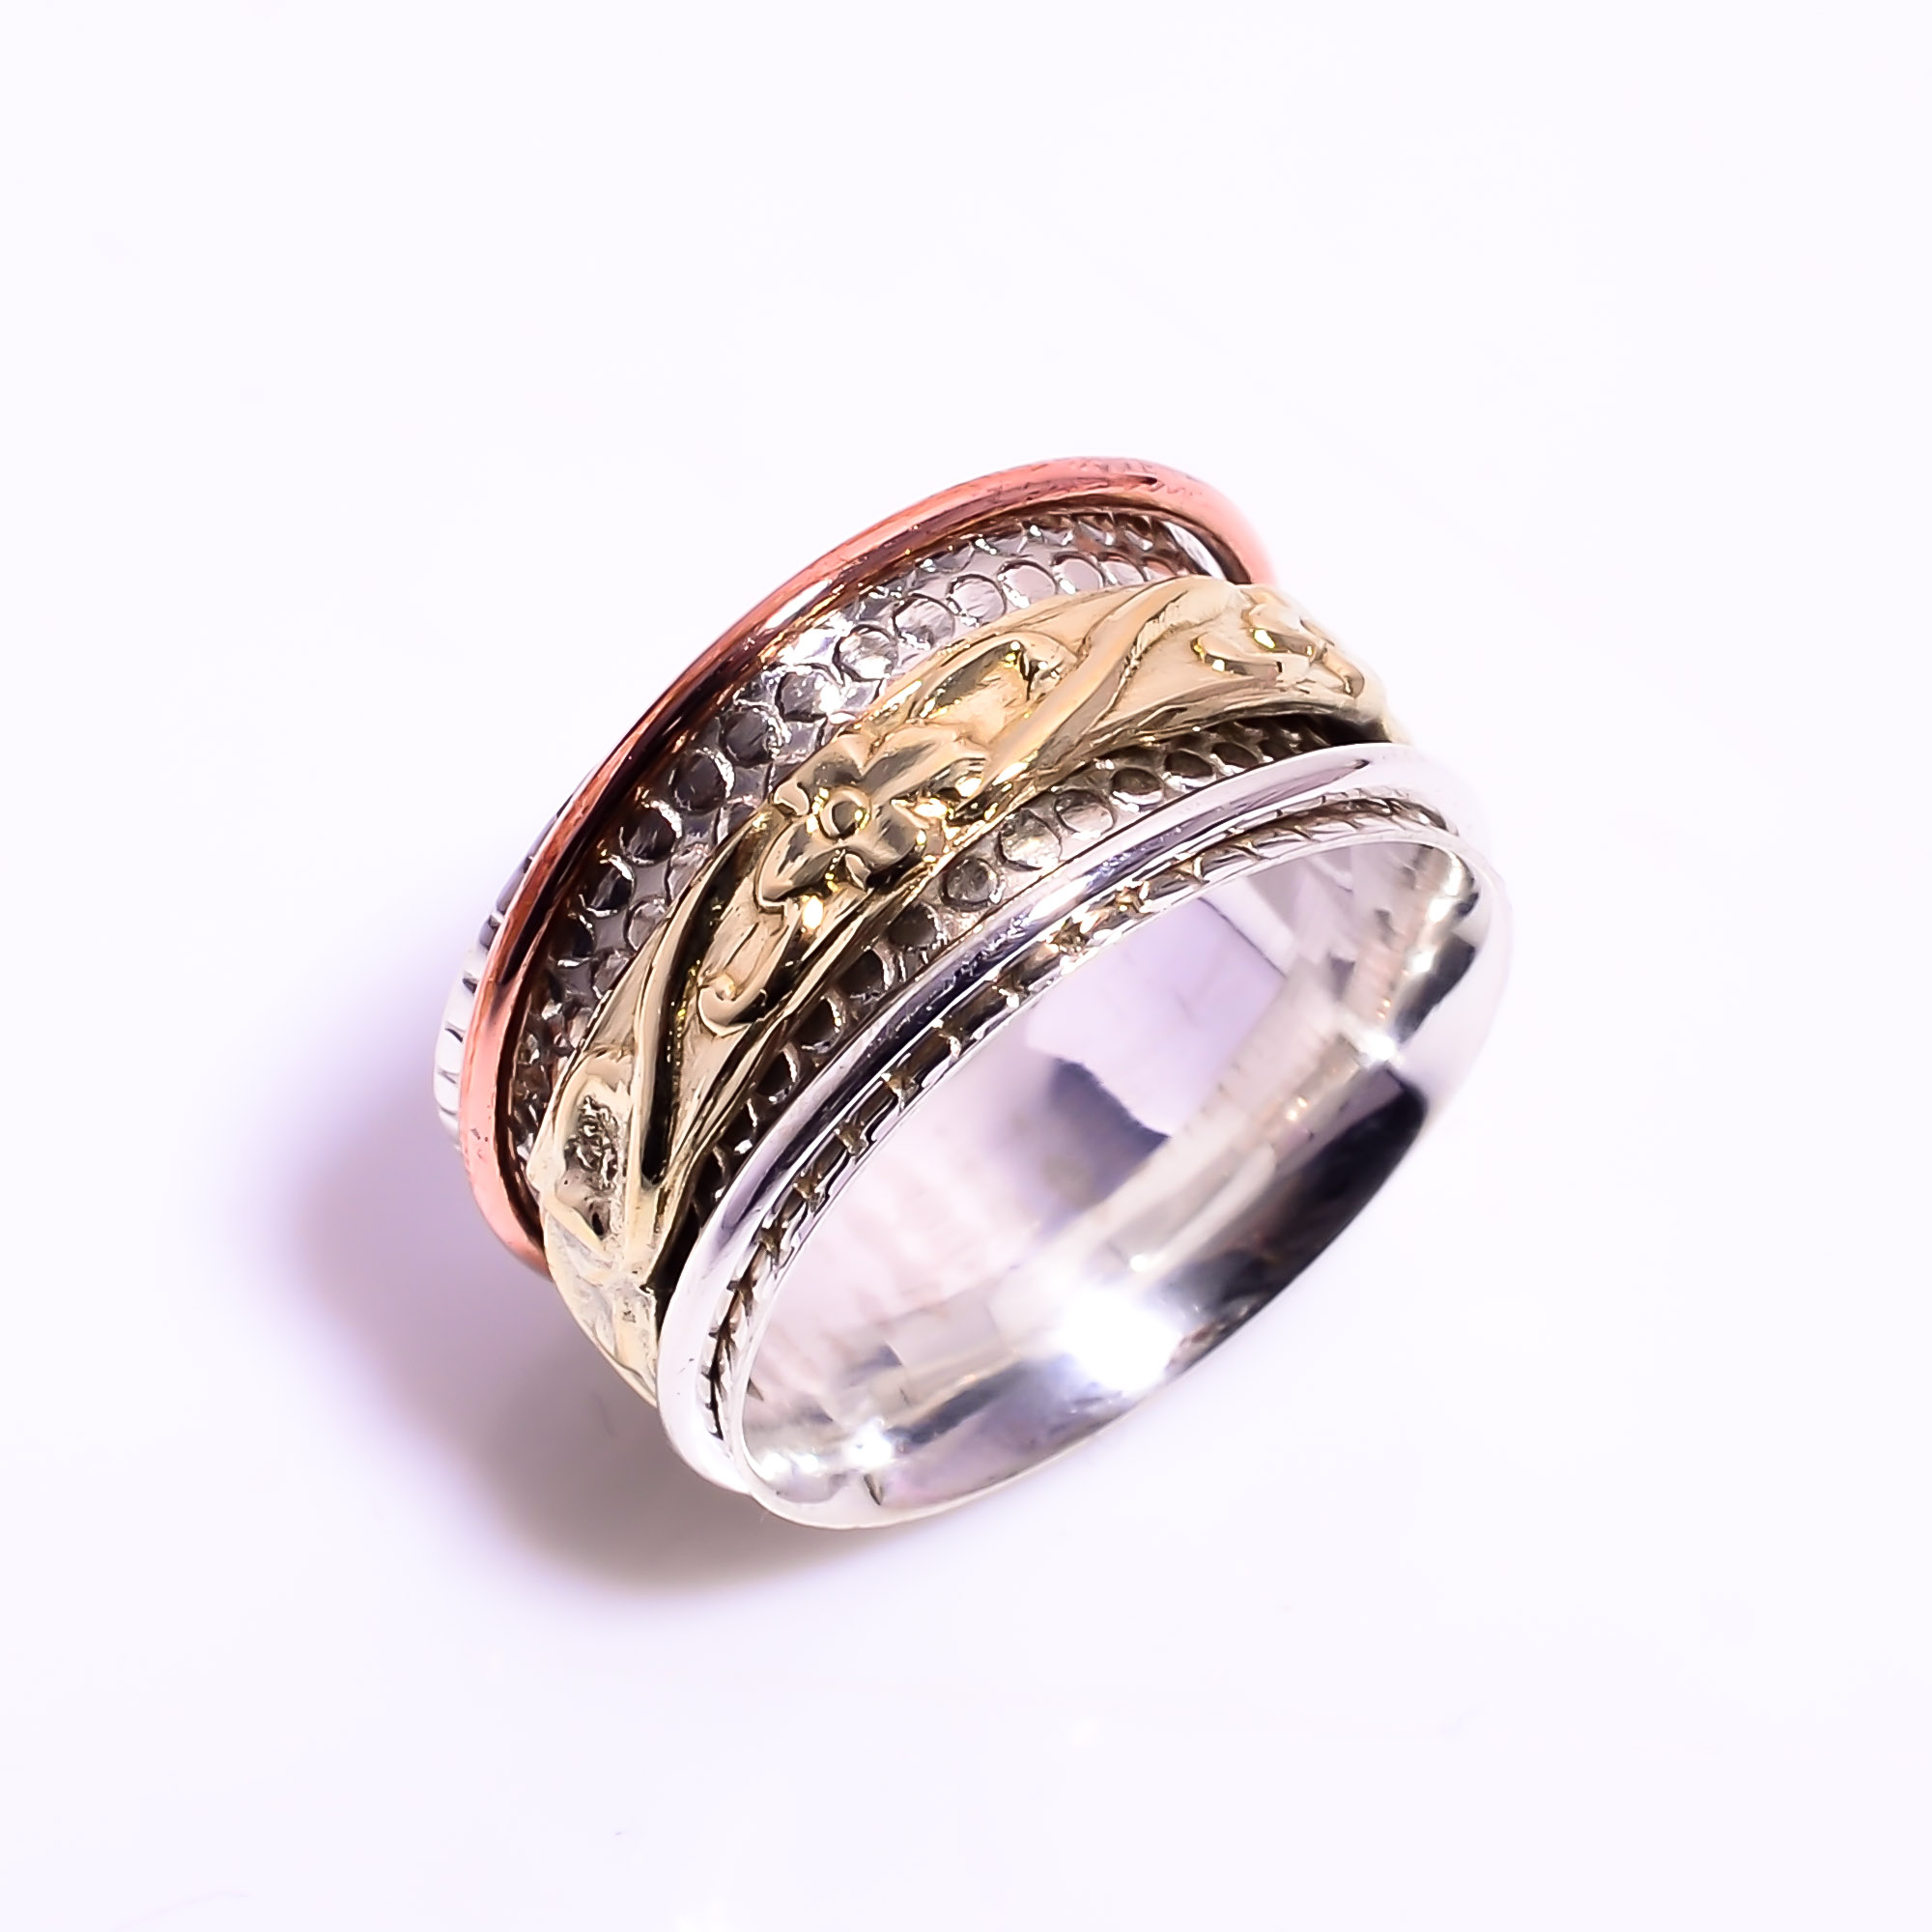 925 Sterling Silver Meditation Spinner Ring Size US 7.75